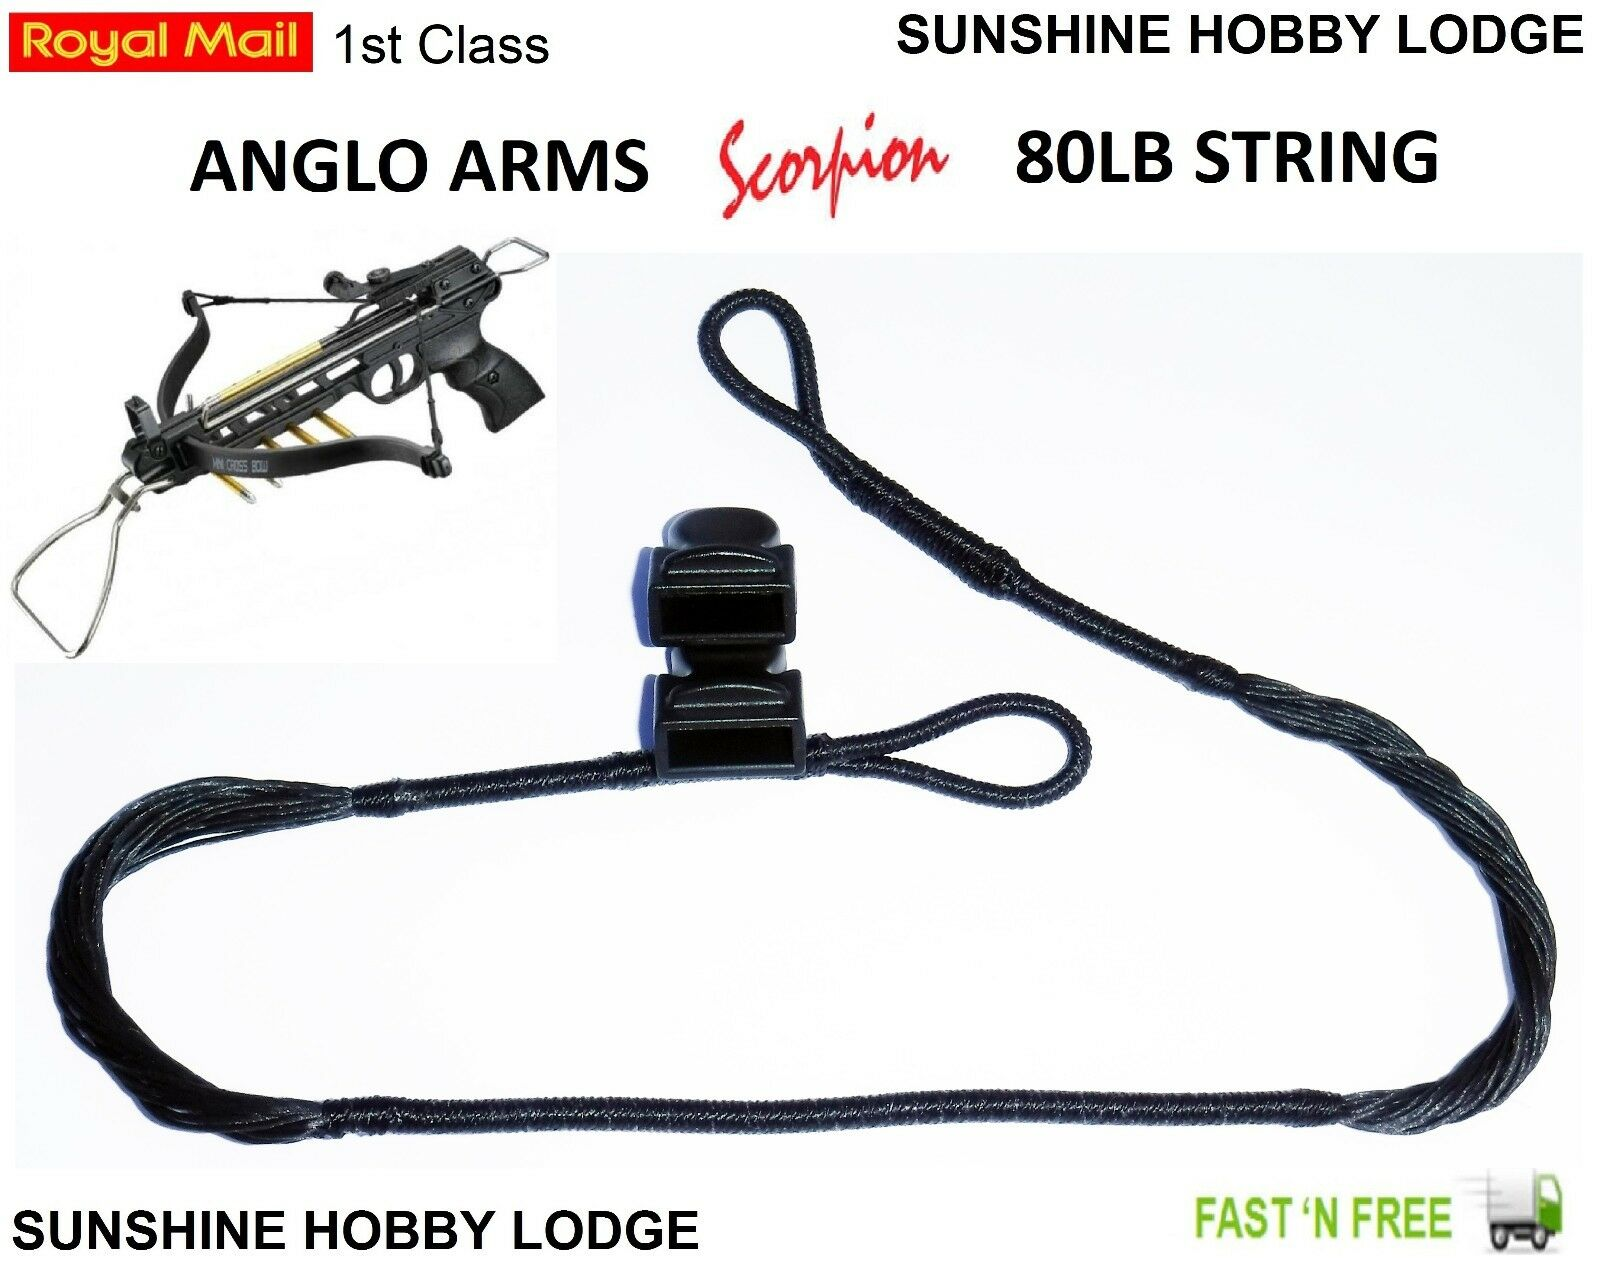 Details about Crossbow String 80lb Pistol Xbow String & End Caps Fits Anglo  Arms Scorpion Bow